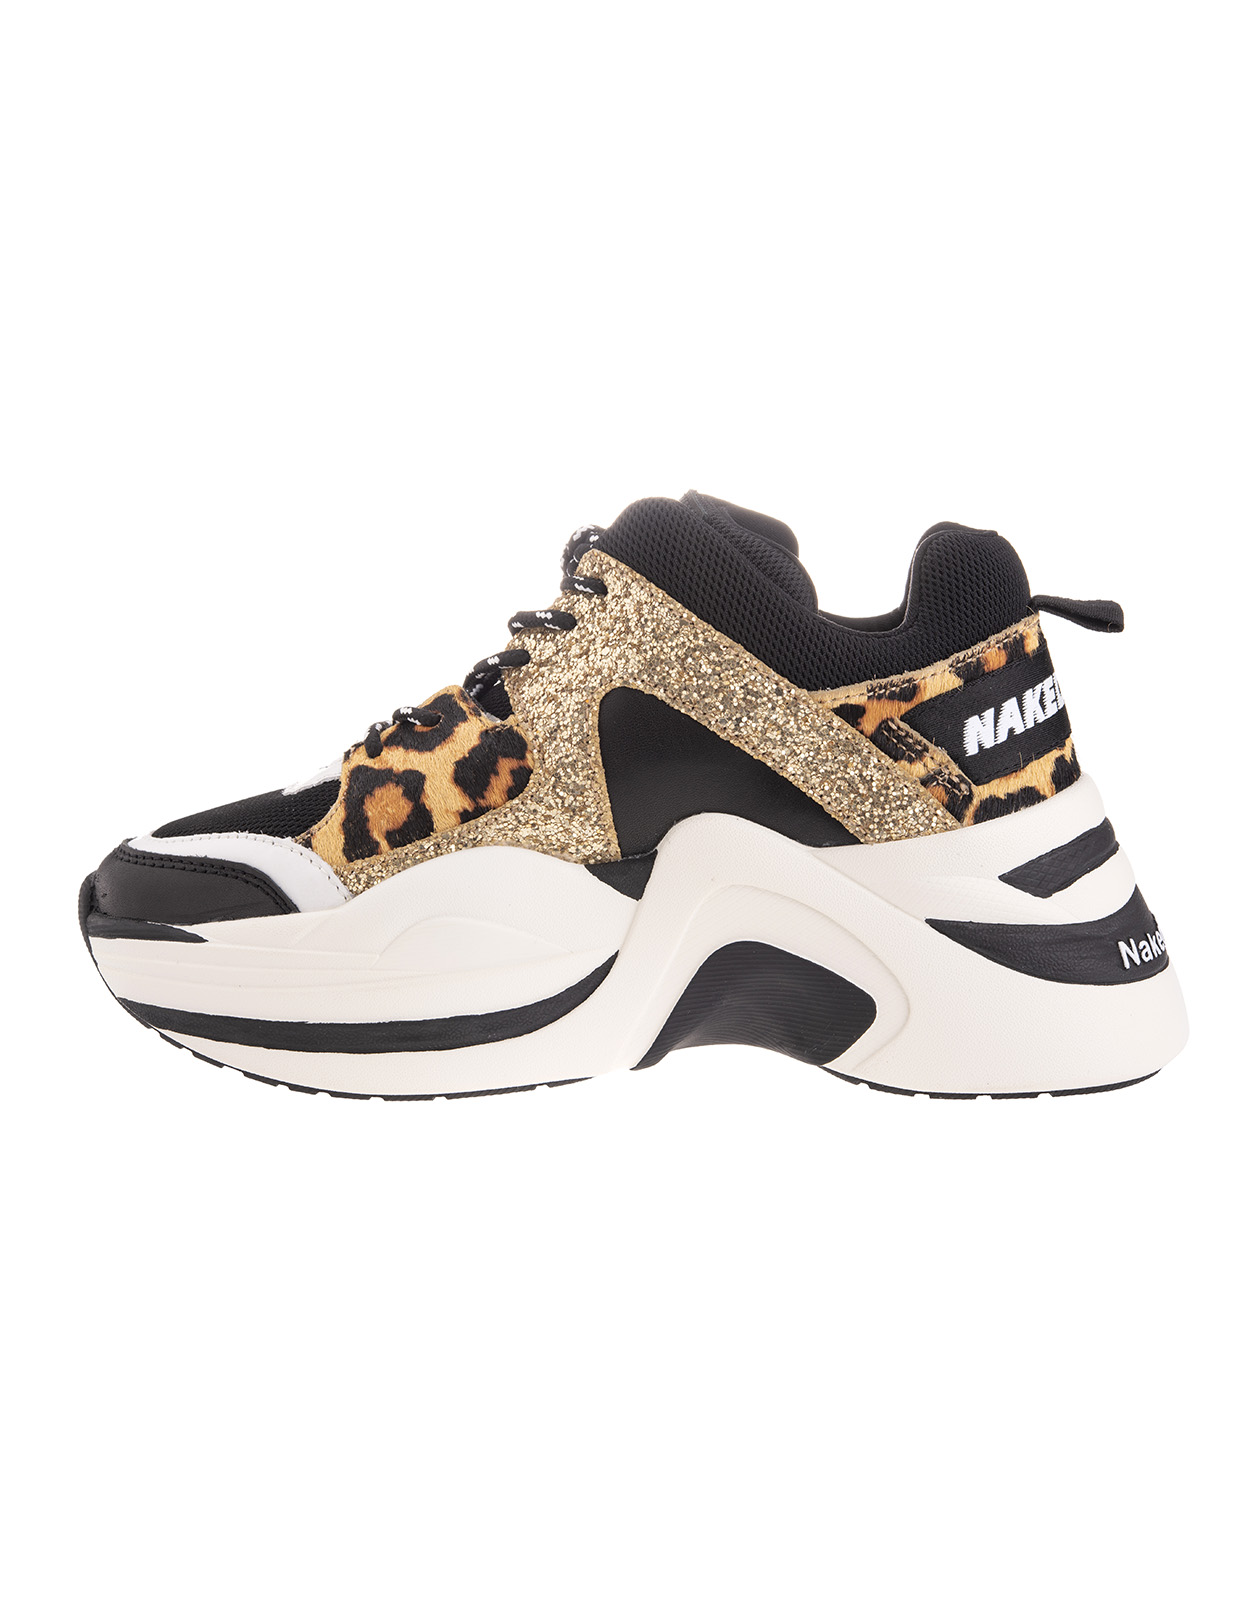 Black Track Sneakers With Gold Glitter And Leopard Print